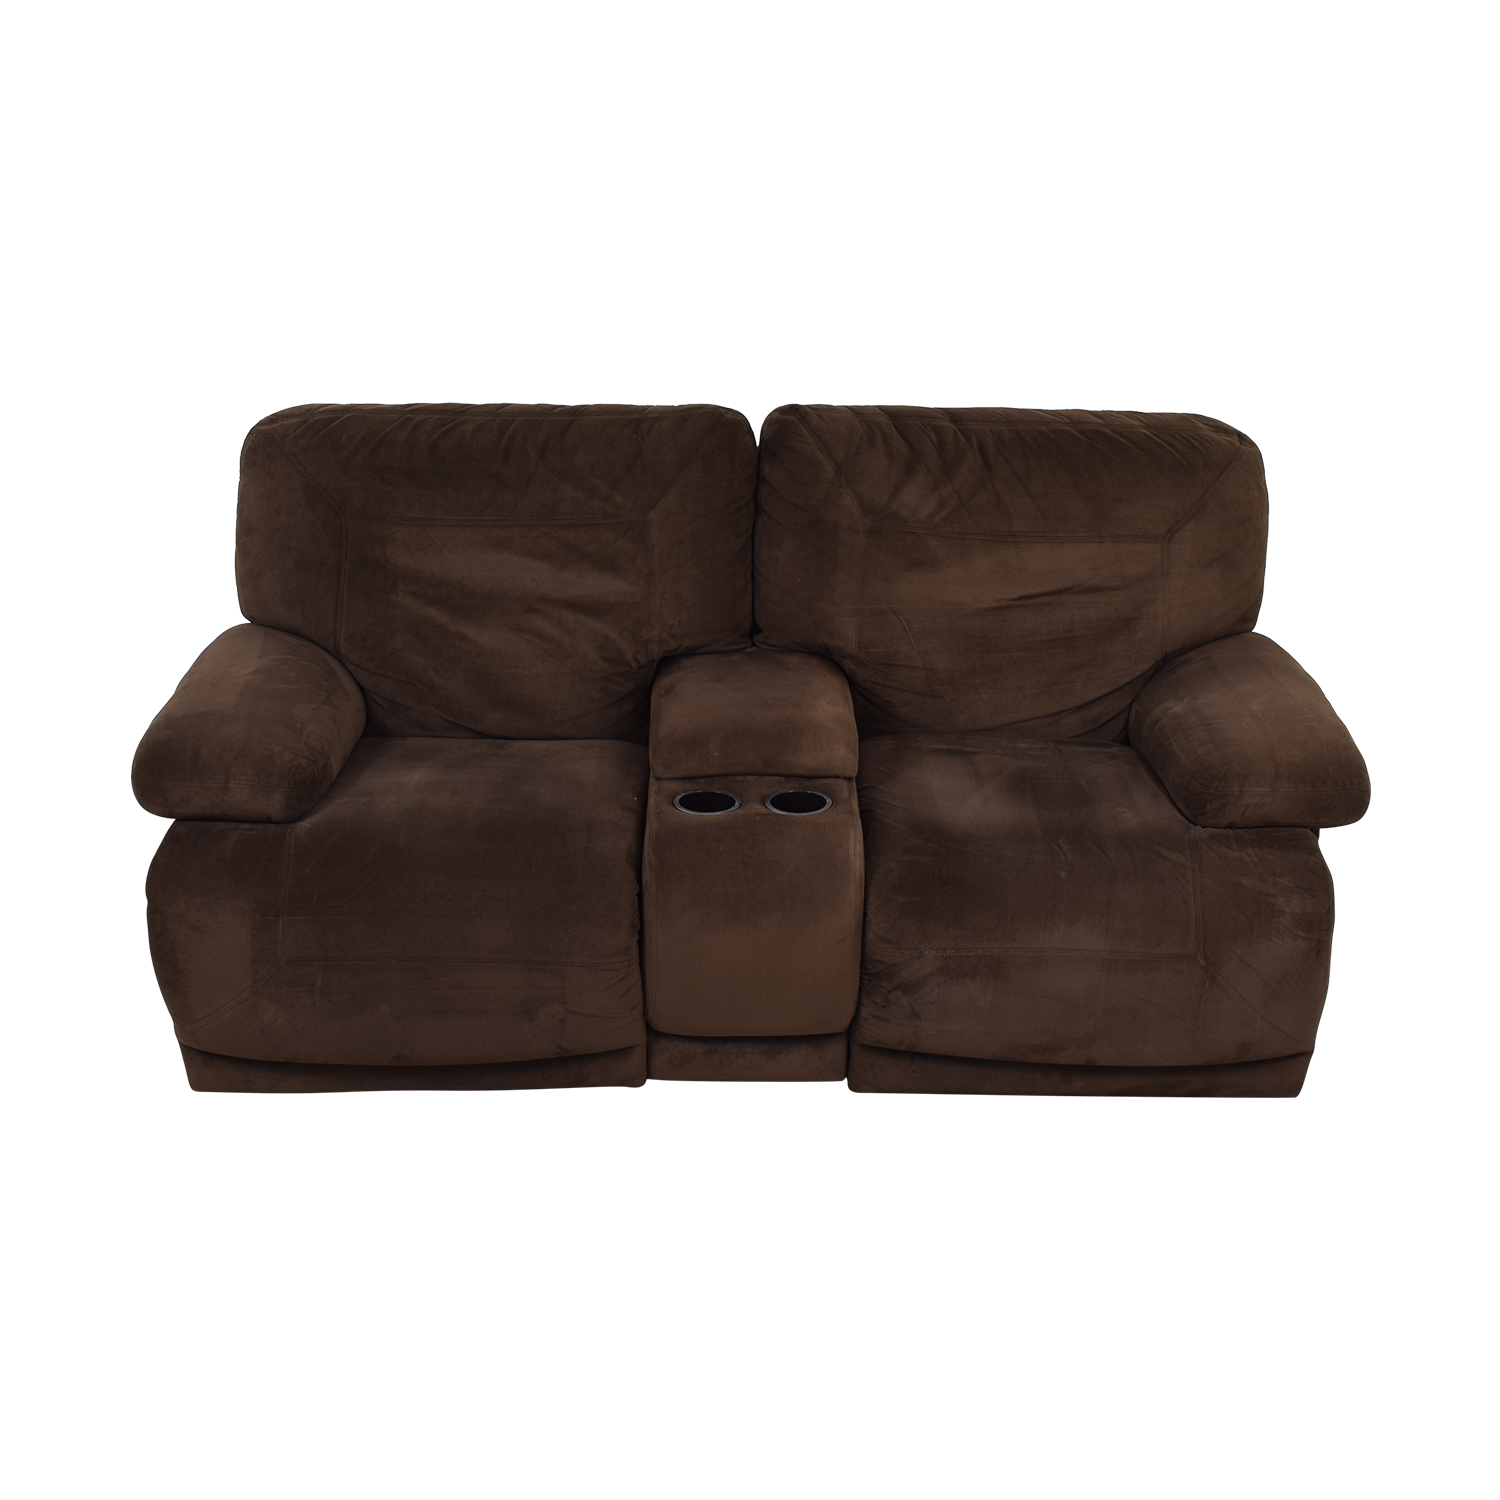 Macy's Brown Reclining Loveseat / Sofas